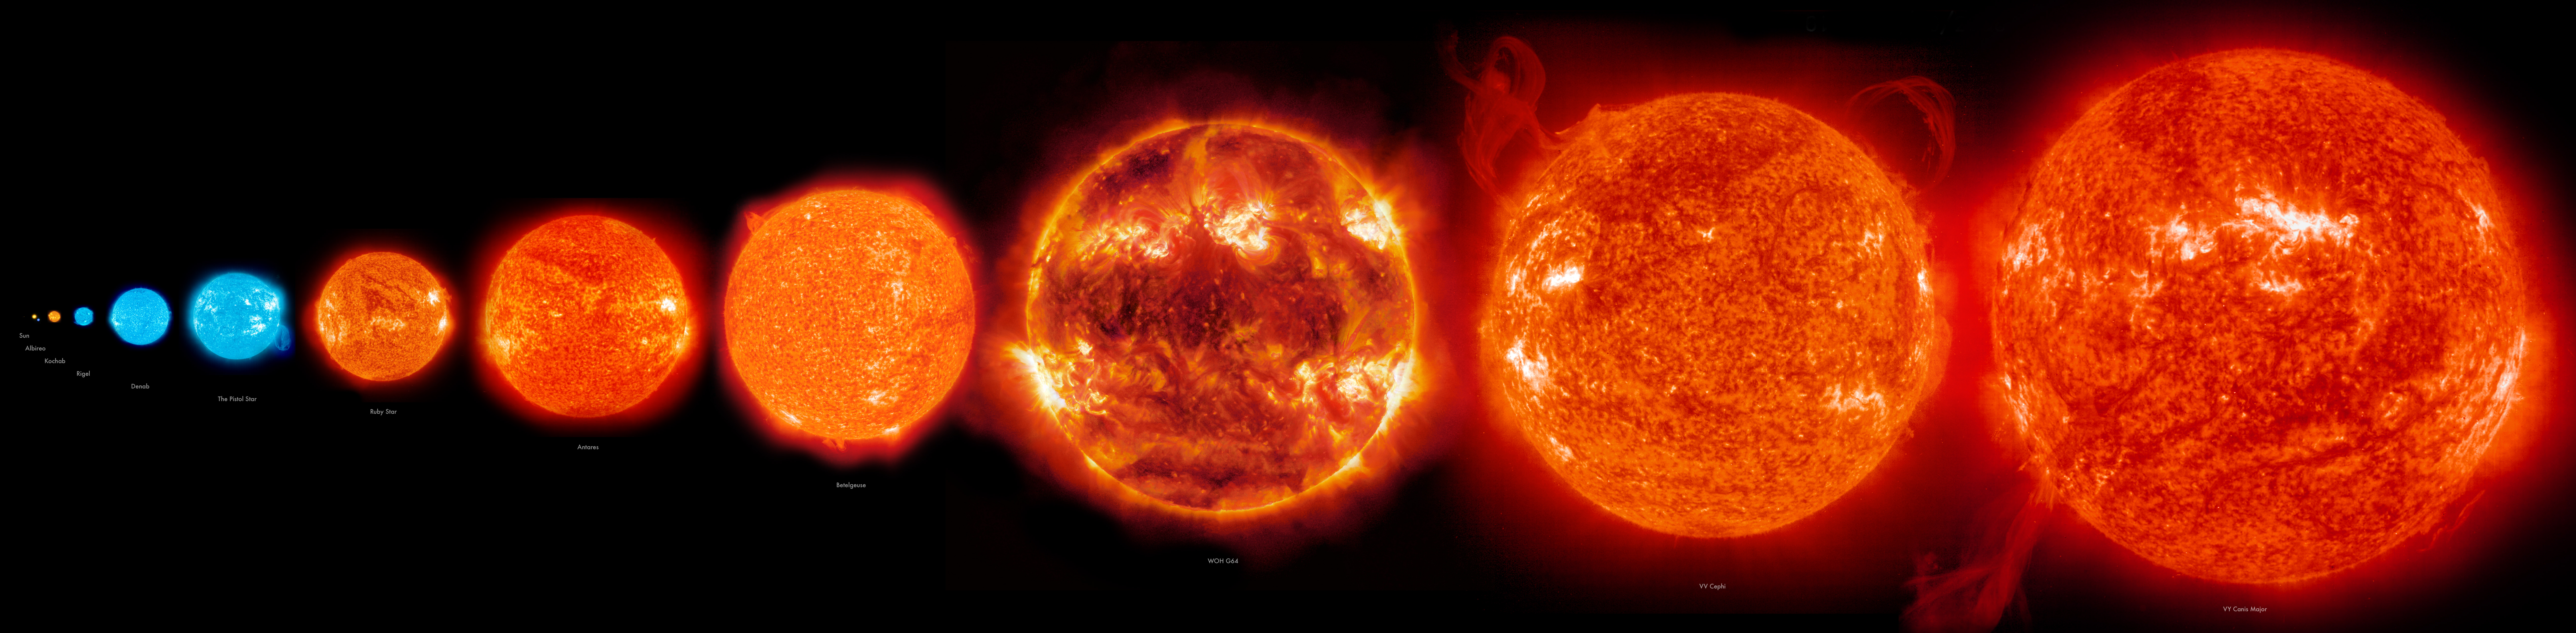 Sun Compared To Other Stars Photos And Wallpapers